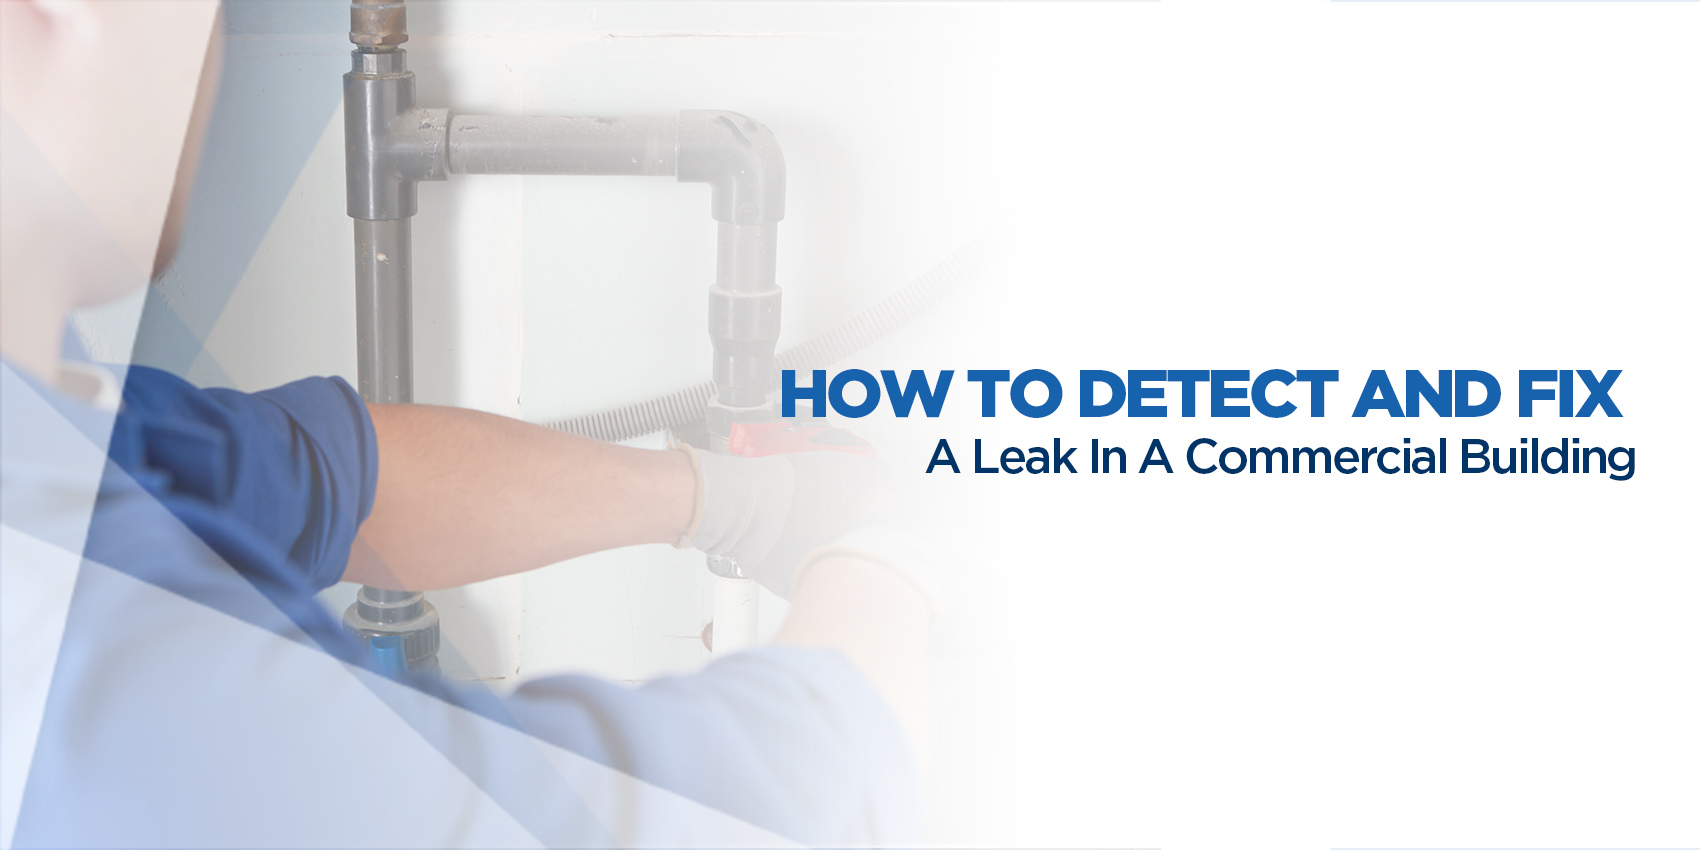 How to Detect and Fix a Leak in a Commercial Building